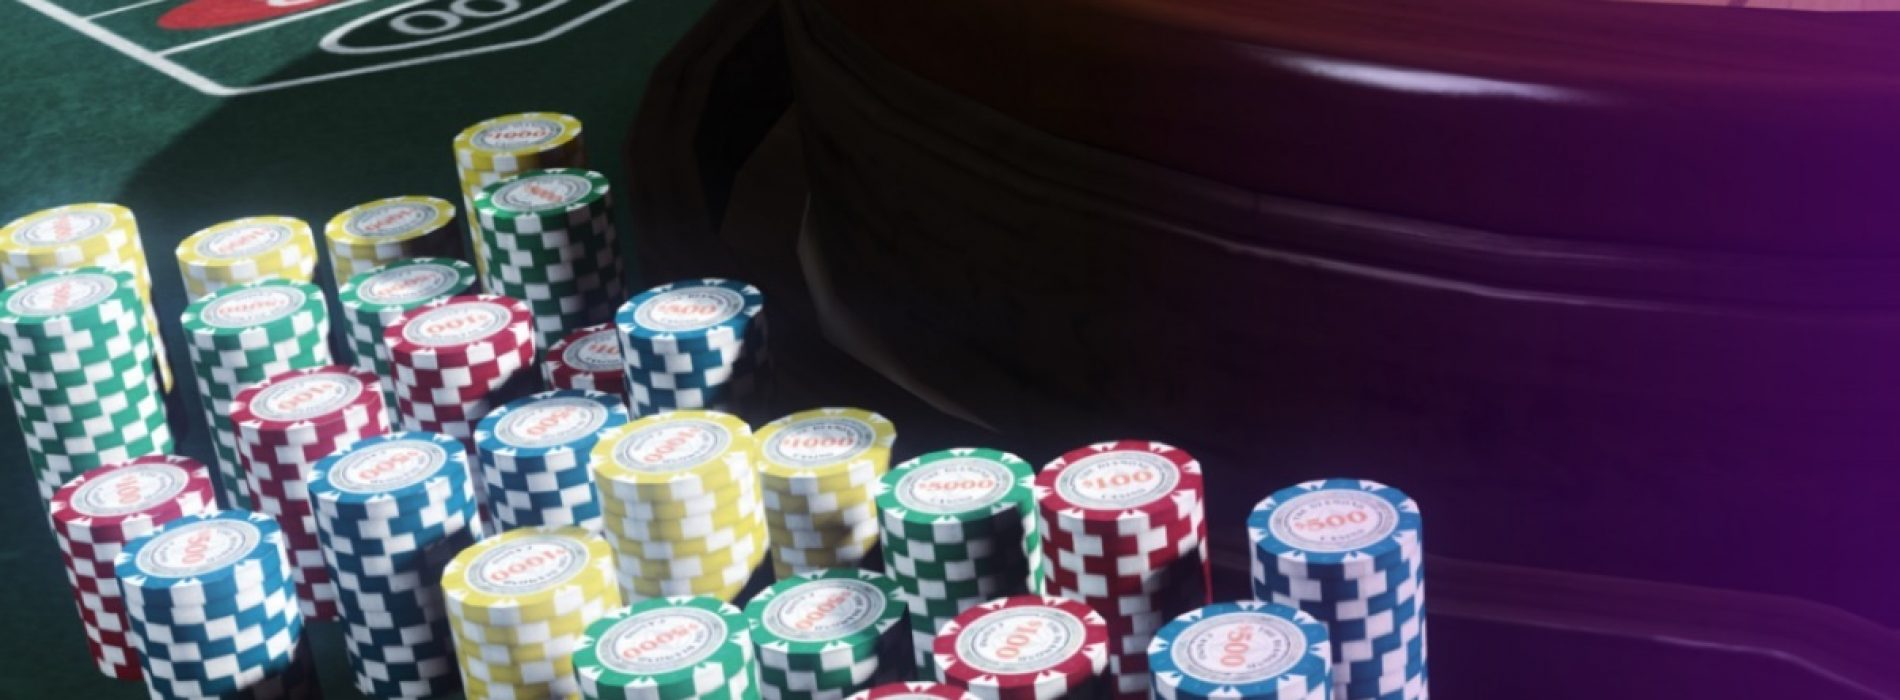 Earning methods! Bet you never know about online casinos